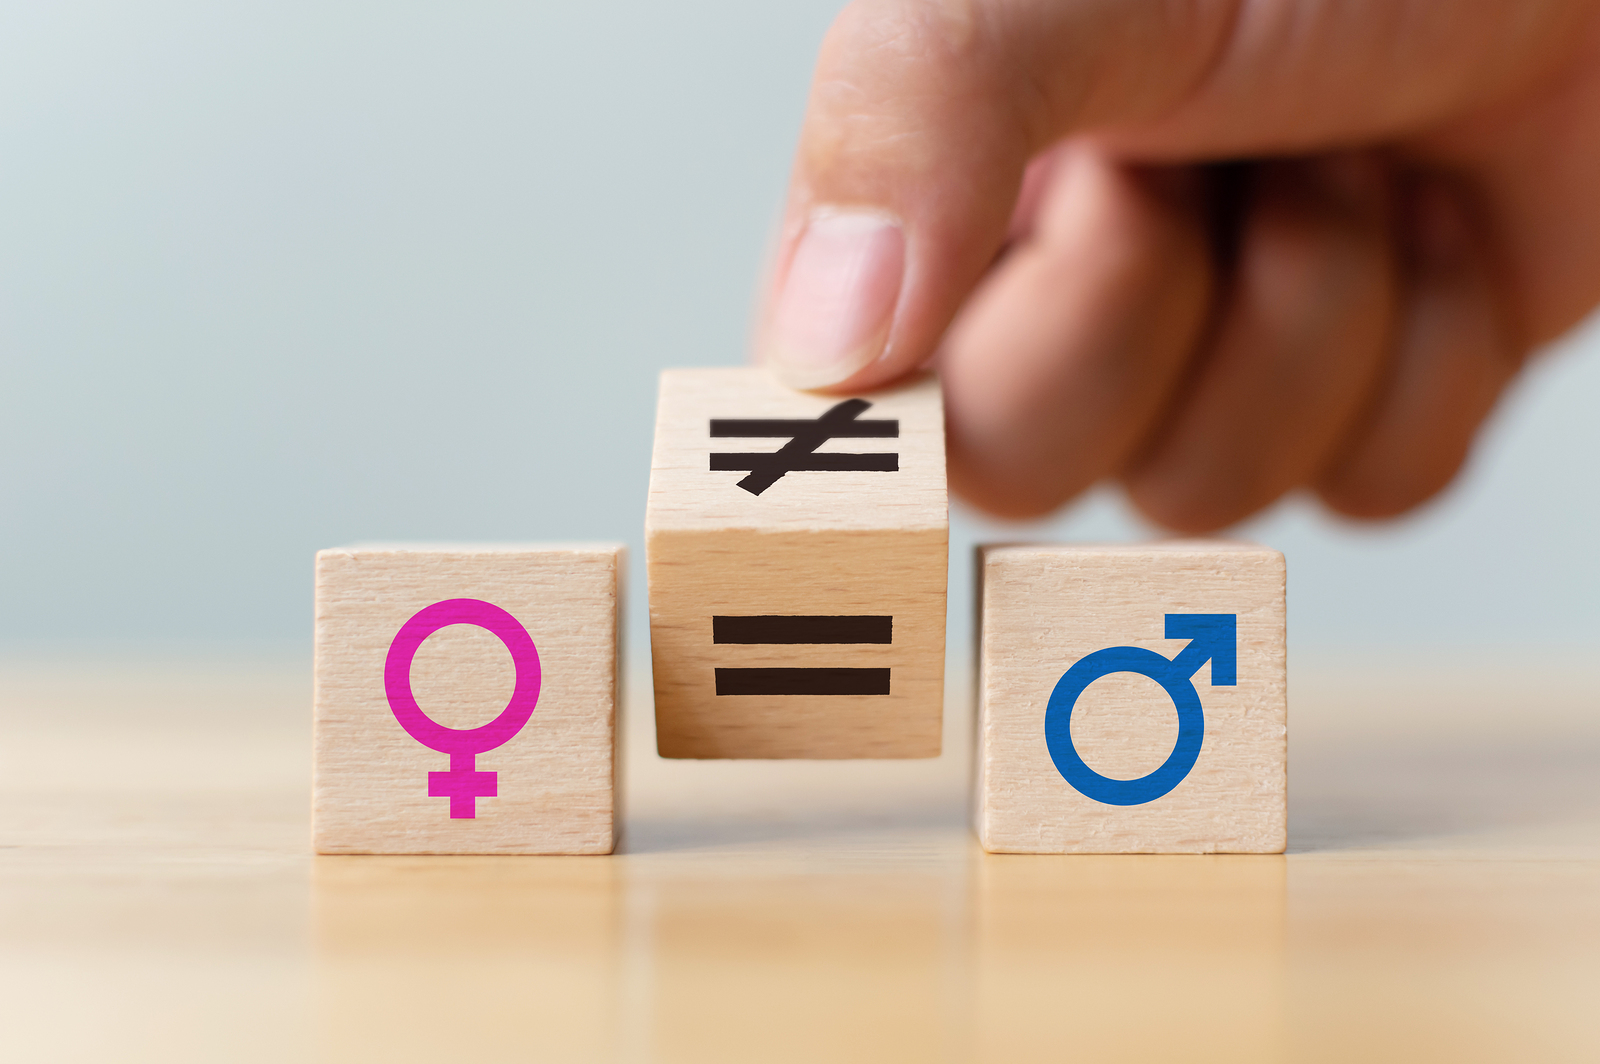 UK falls six places in gender equality rankings | Inclusive Companies